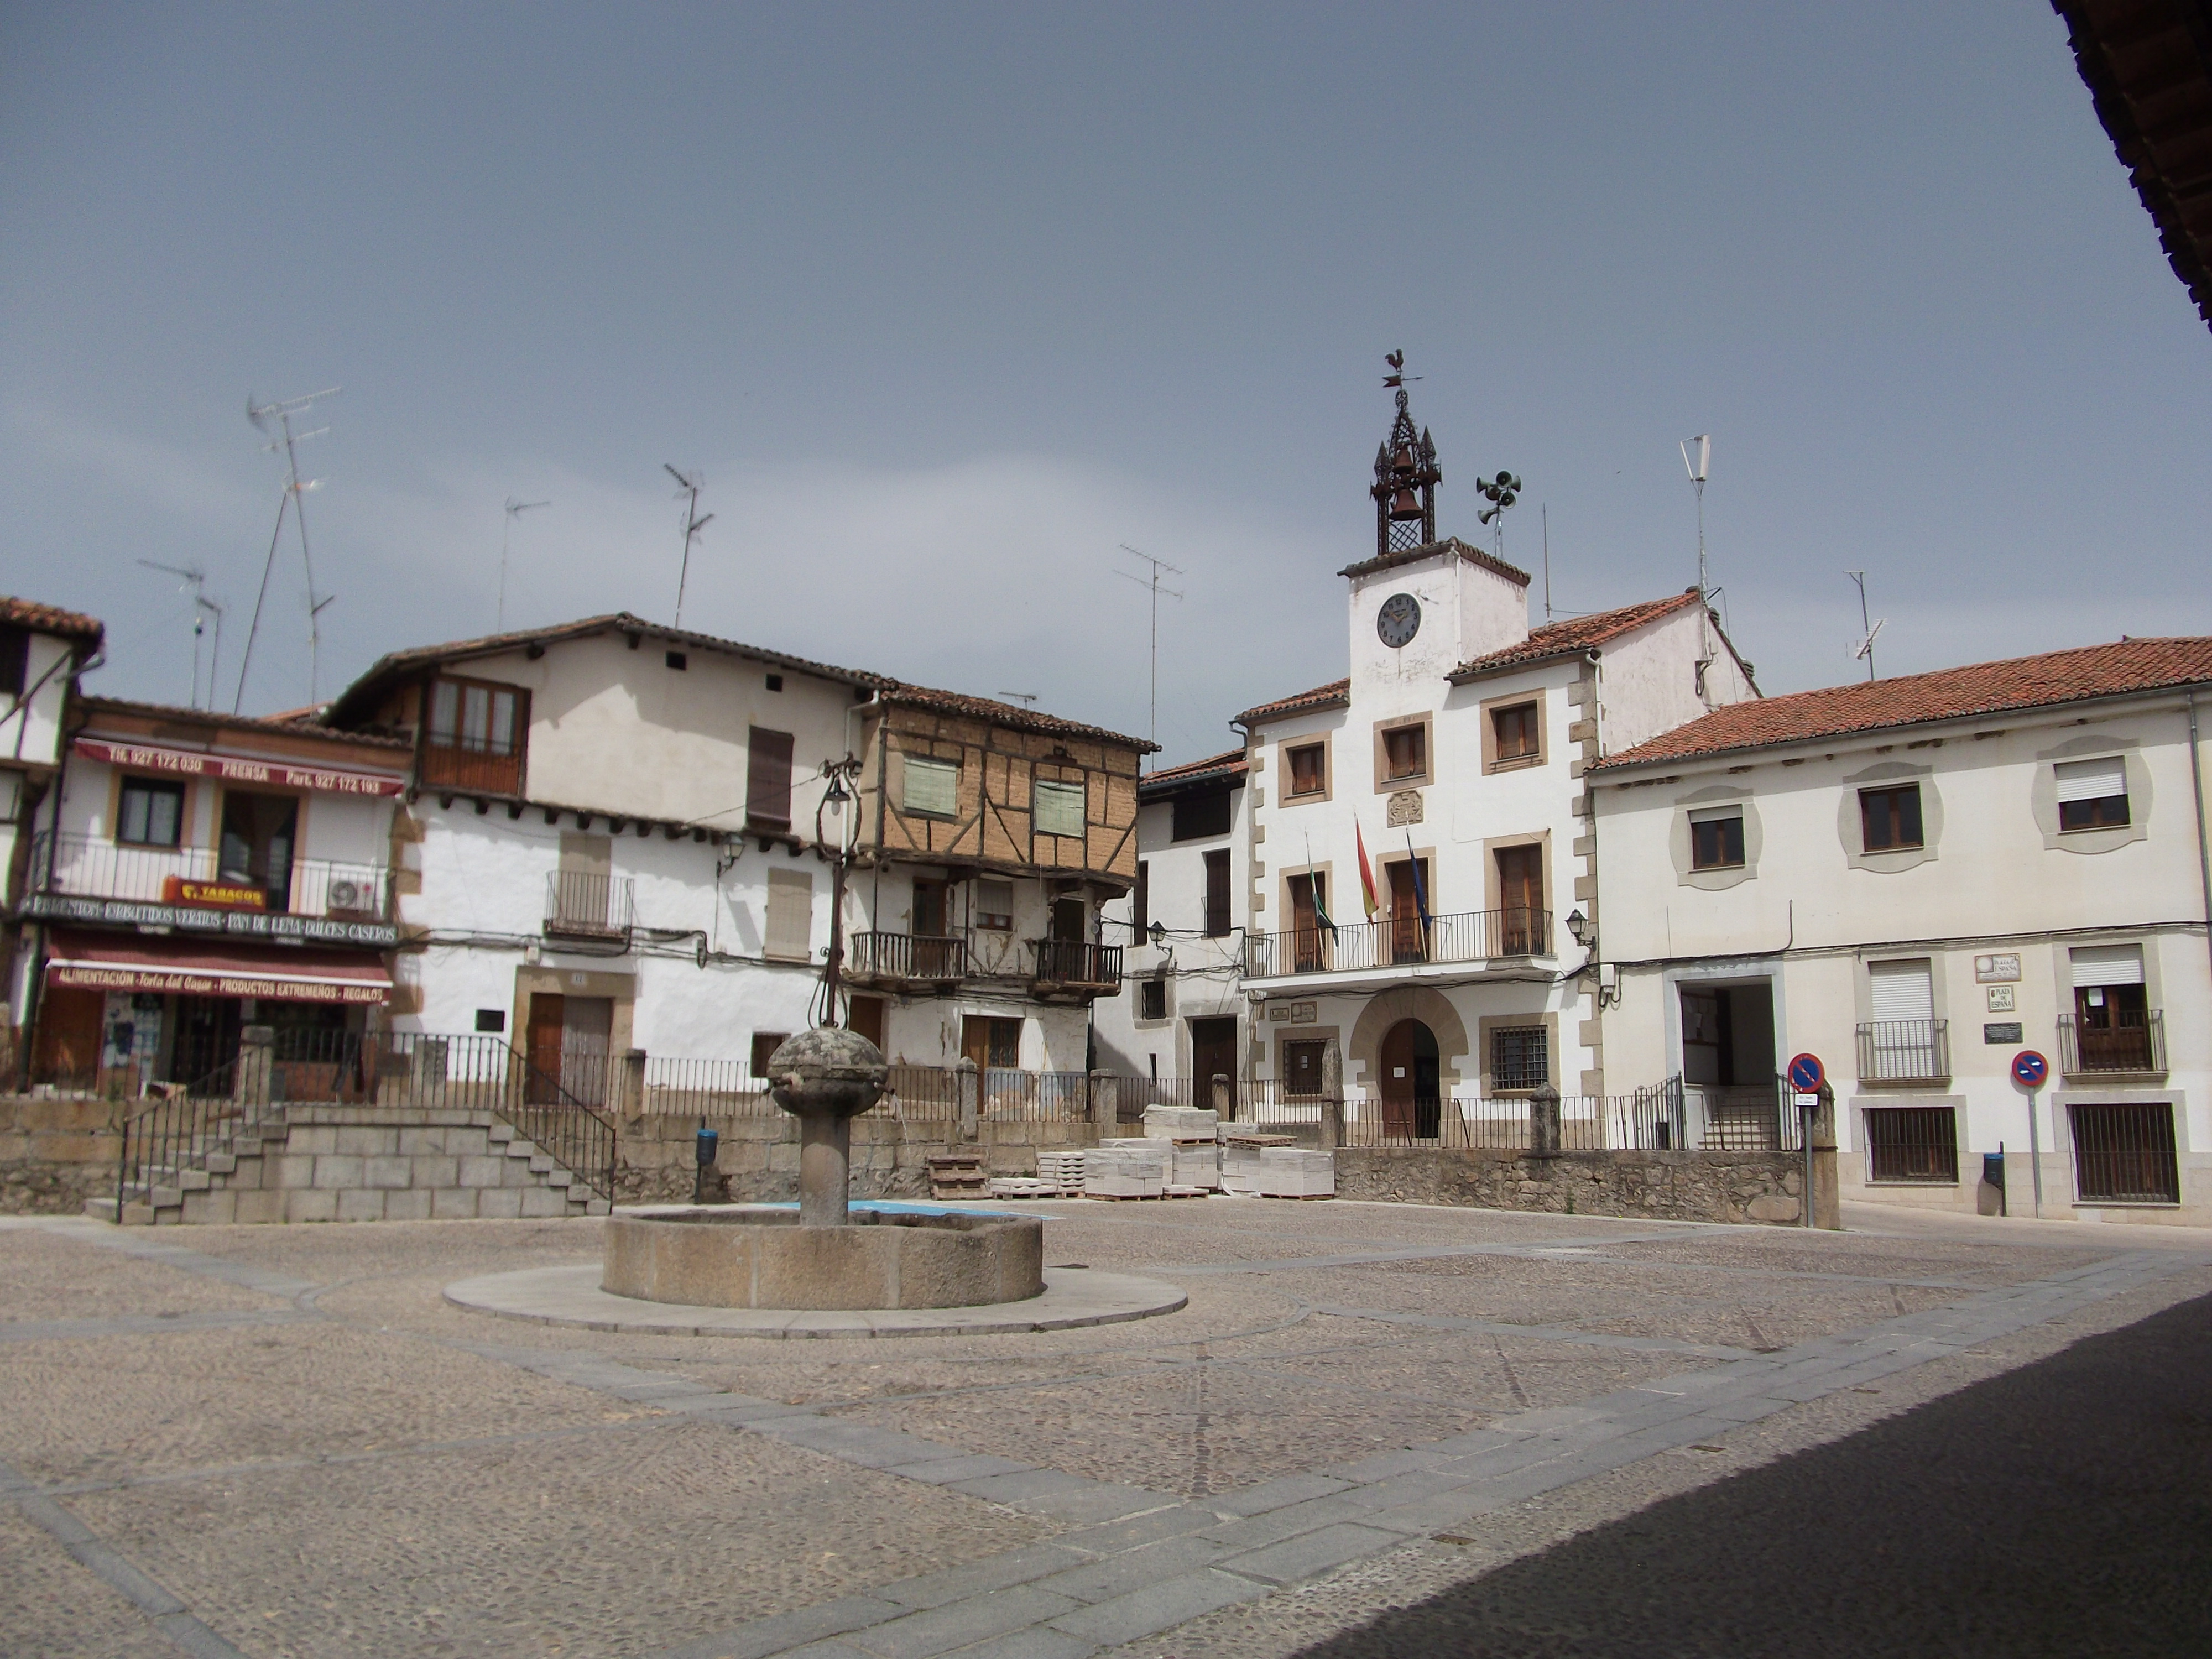 The town square at Cuacos de Yuste.